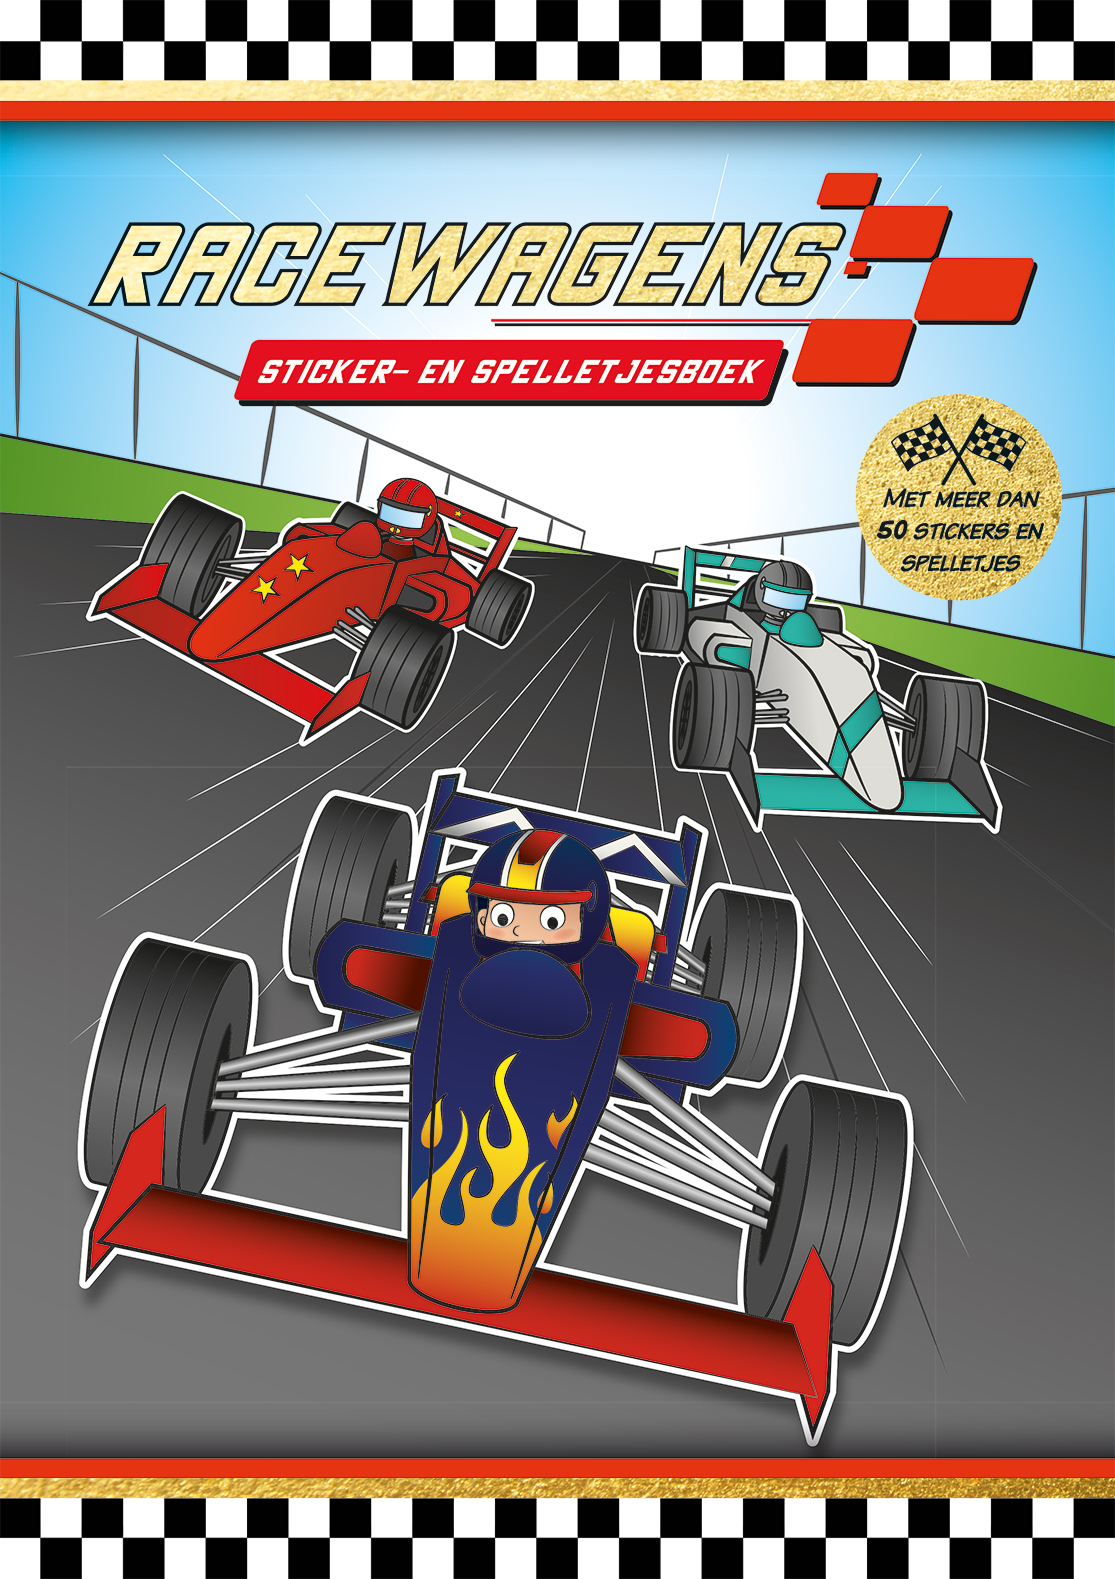 Racewagen - sticker|spelletjesboek